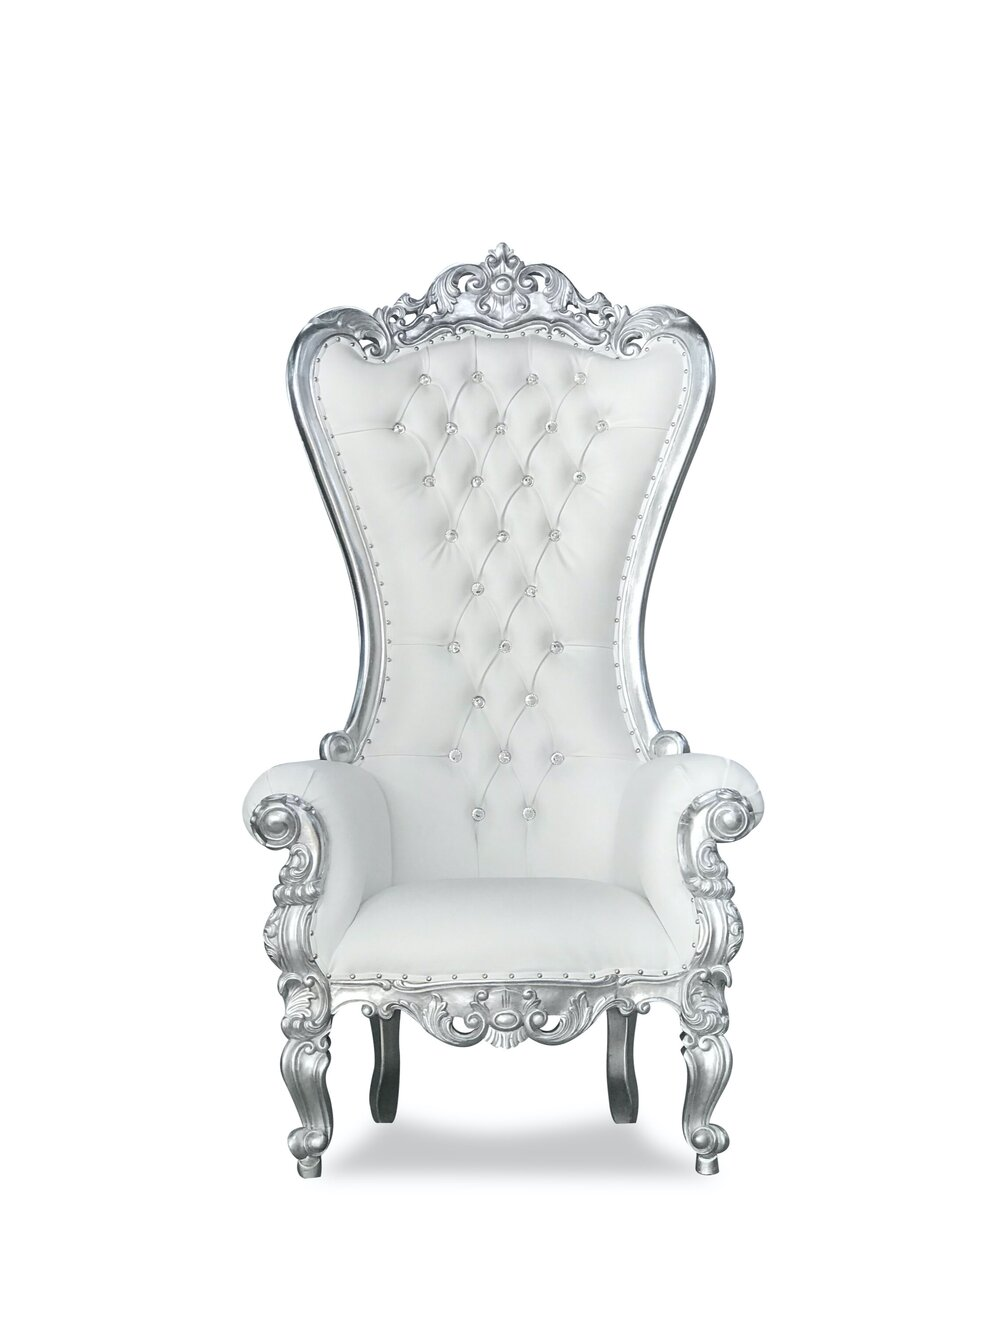 White and Silver Throne Chair